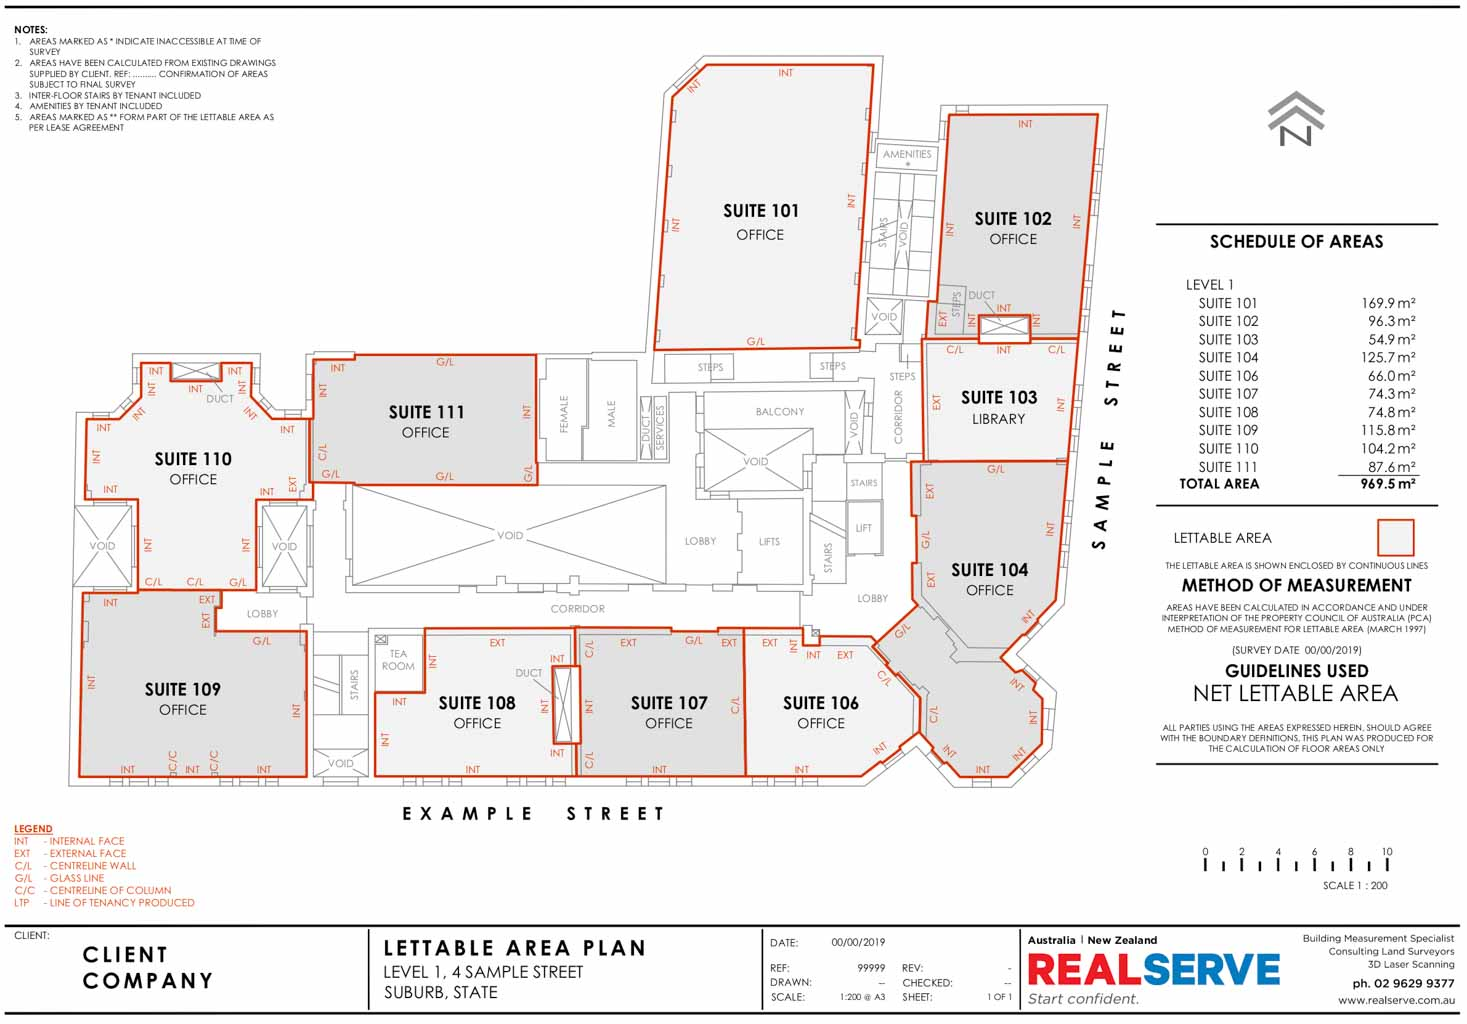 REALSERVE NET LETTABLE AREA SAMPLE DRAWING FOR OFFICES